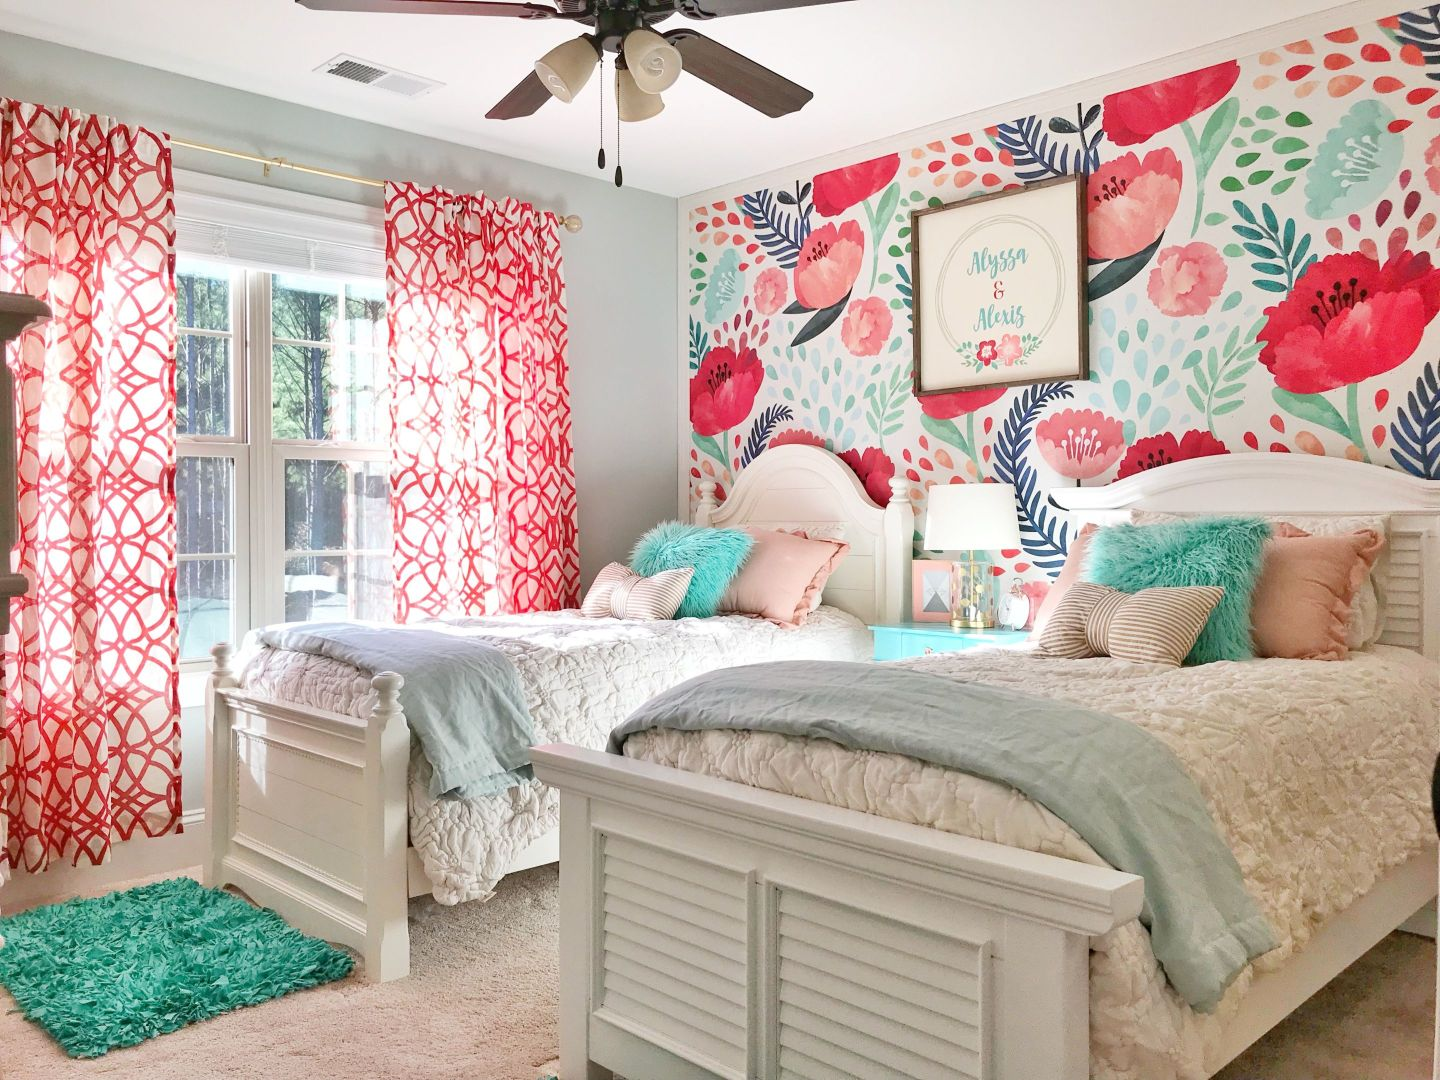 IMG_4055-1440x1080 3 Tips on How to Decorate a Southern Girl's Room